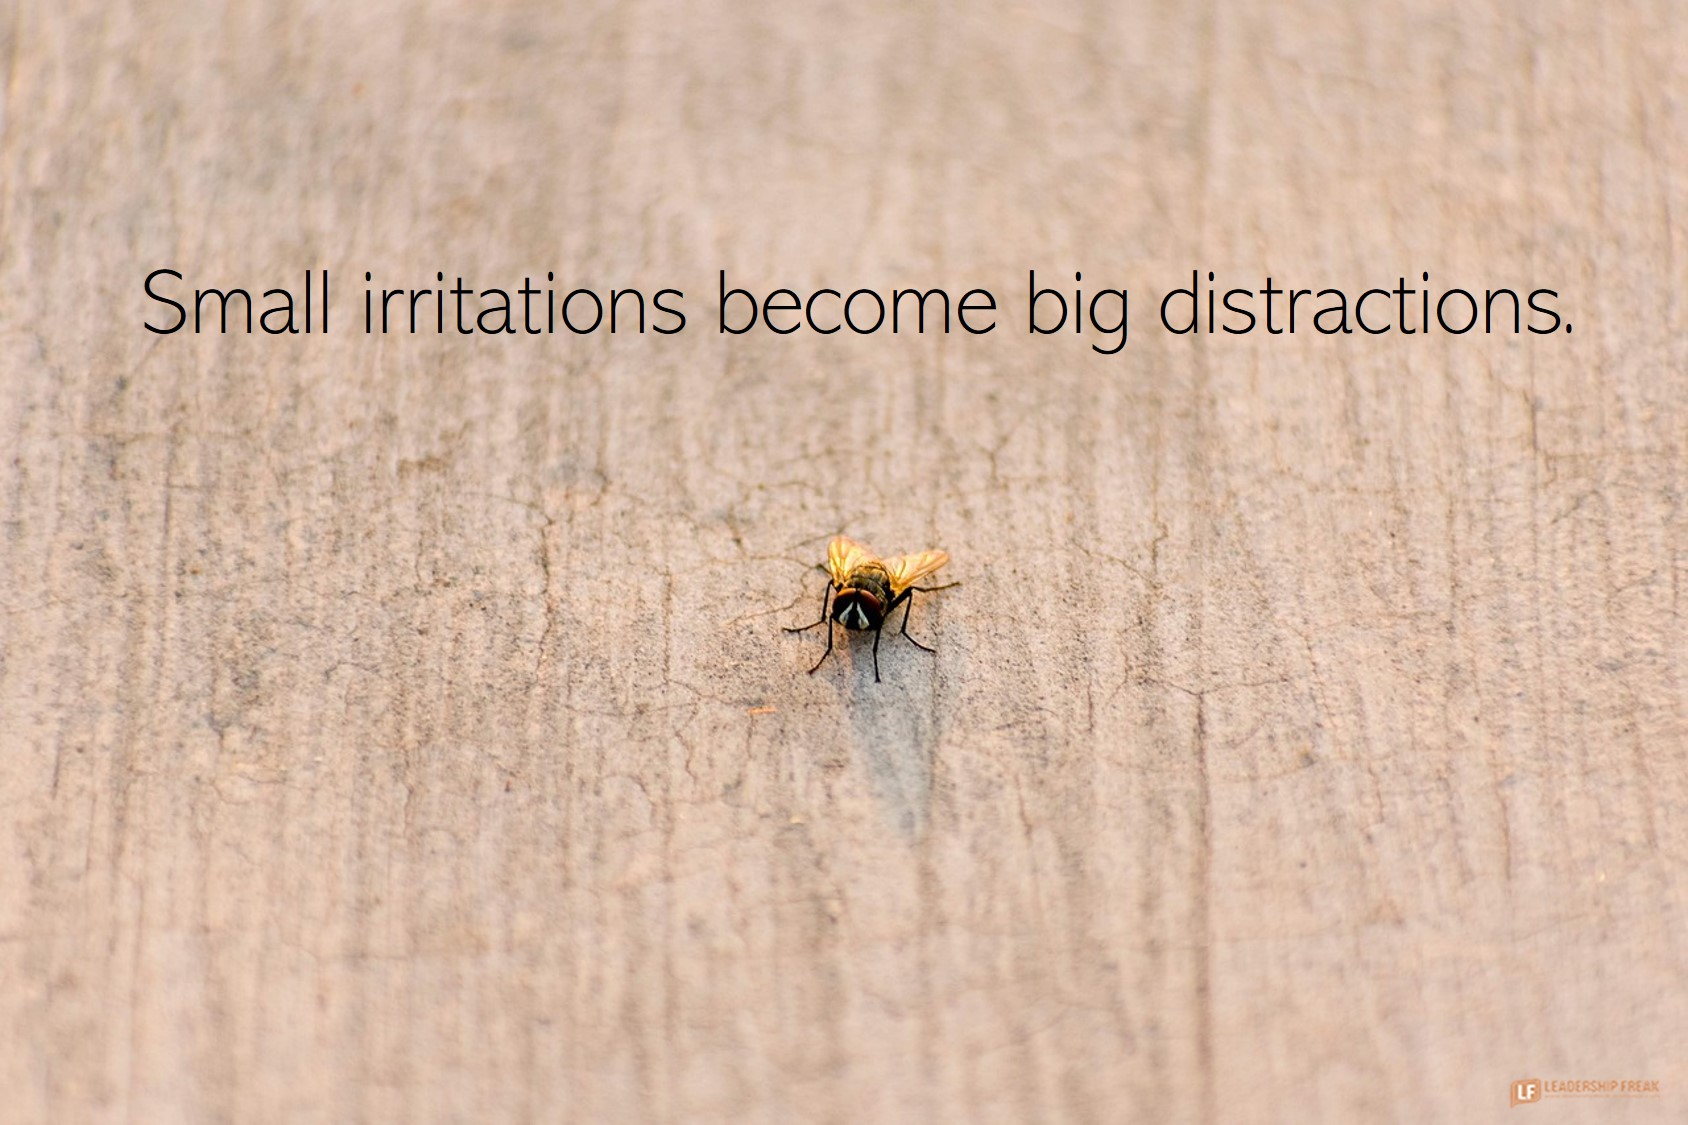 House fly.  Small irritations become big distractions.